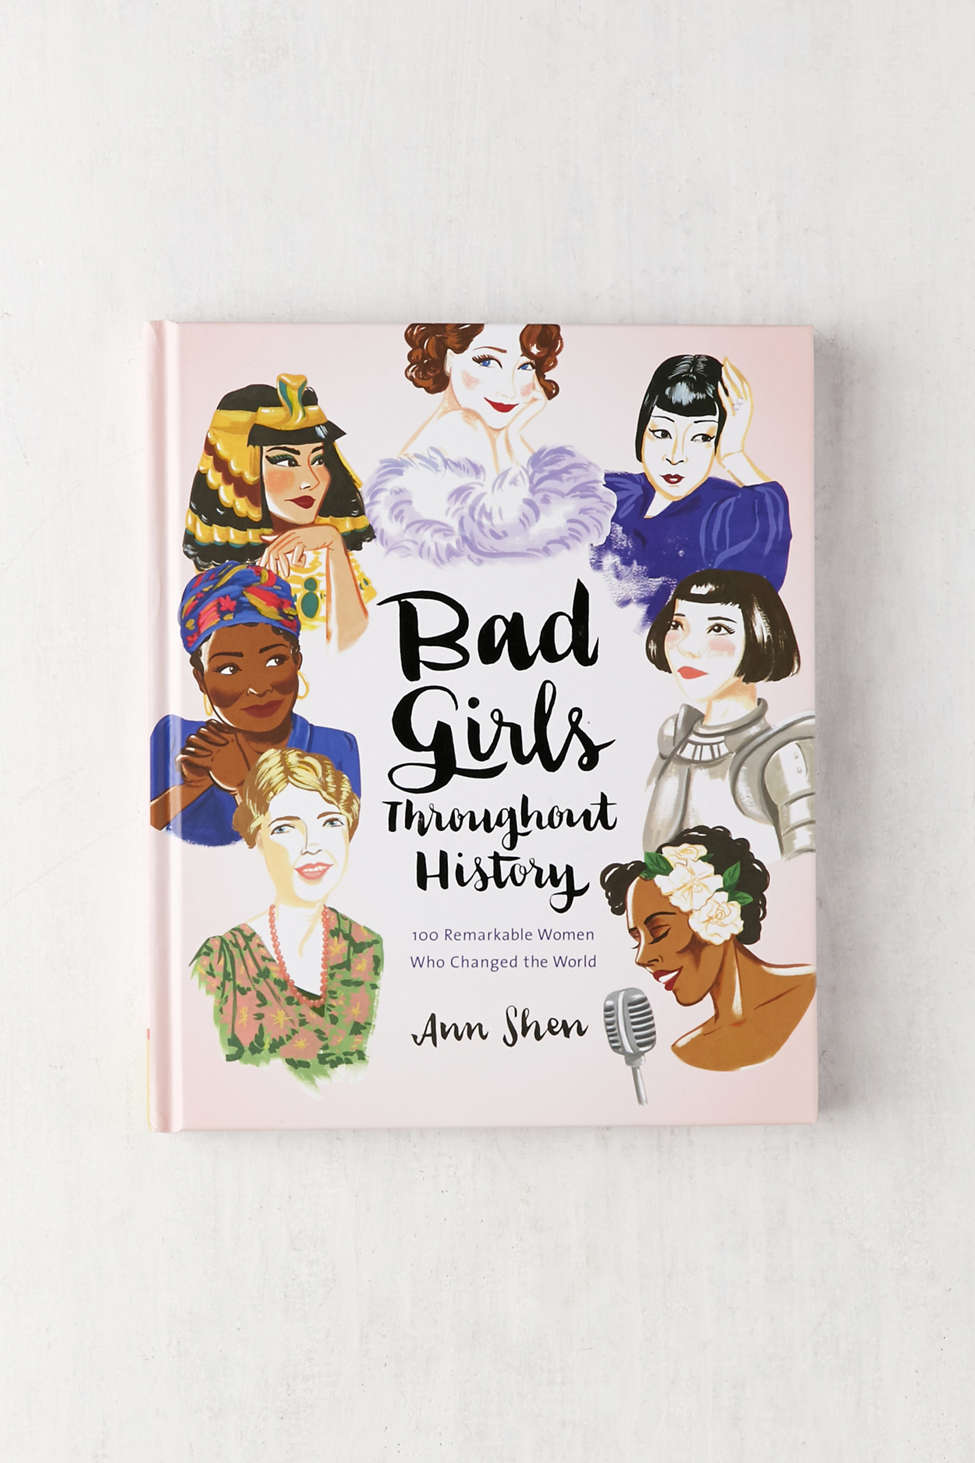 For bad girls who read books